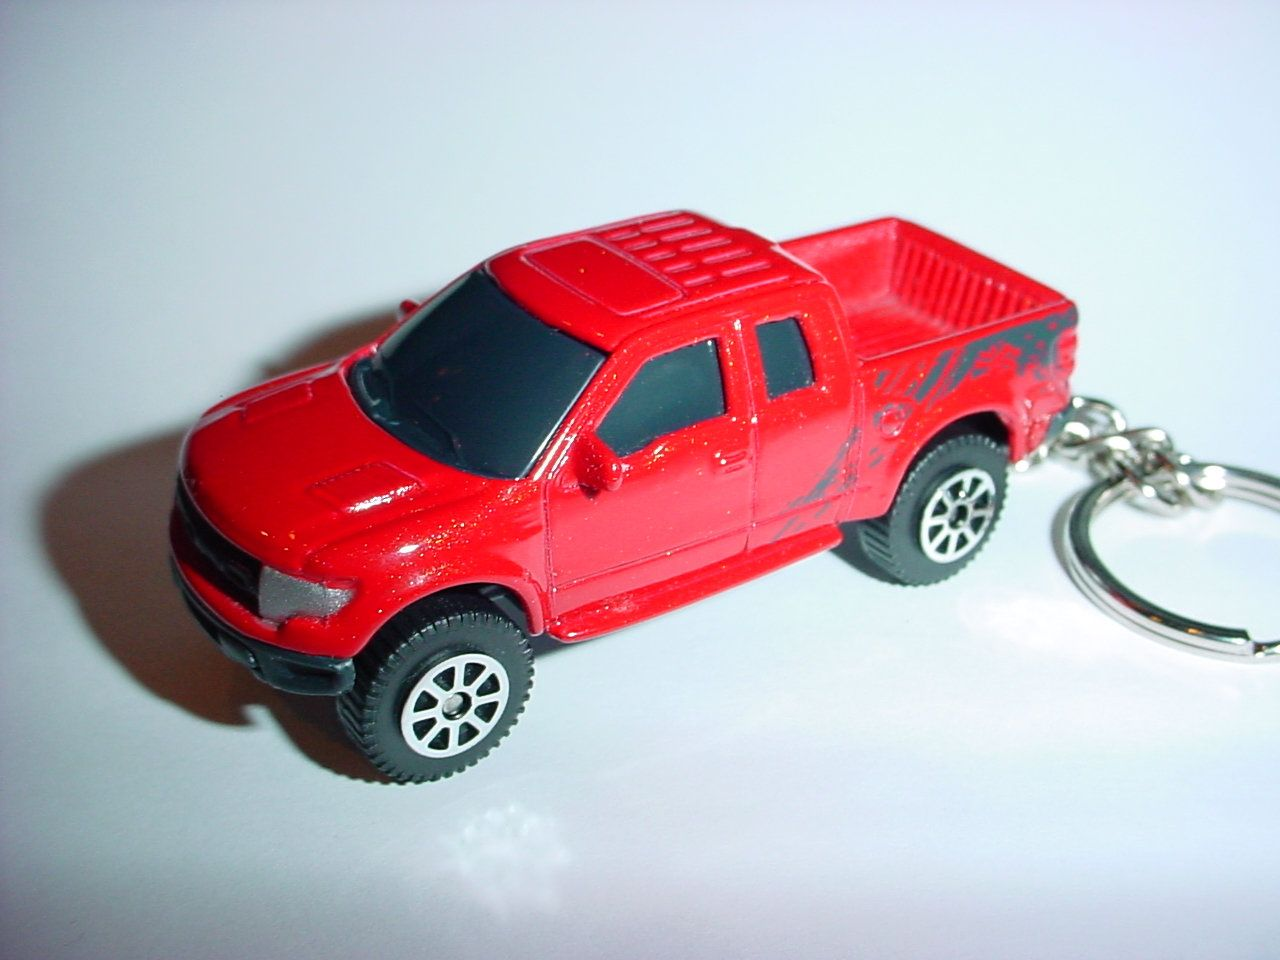 3d Ford F 150 Raptor Truck Custom Keychain By Brian Thornton Keyring Key Chain Finished In Red Black Trim 4x4 Racing Trim Pick Up Offroad In 2020 Ford F150 Raptor Truck Custom Keychain